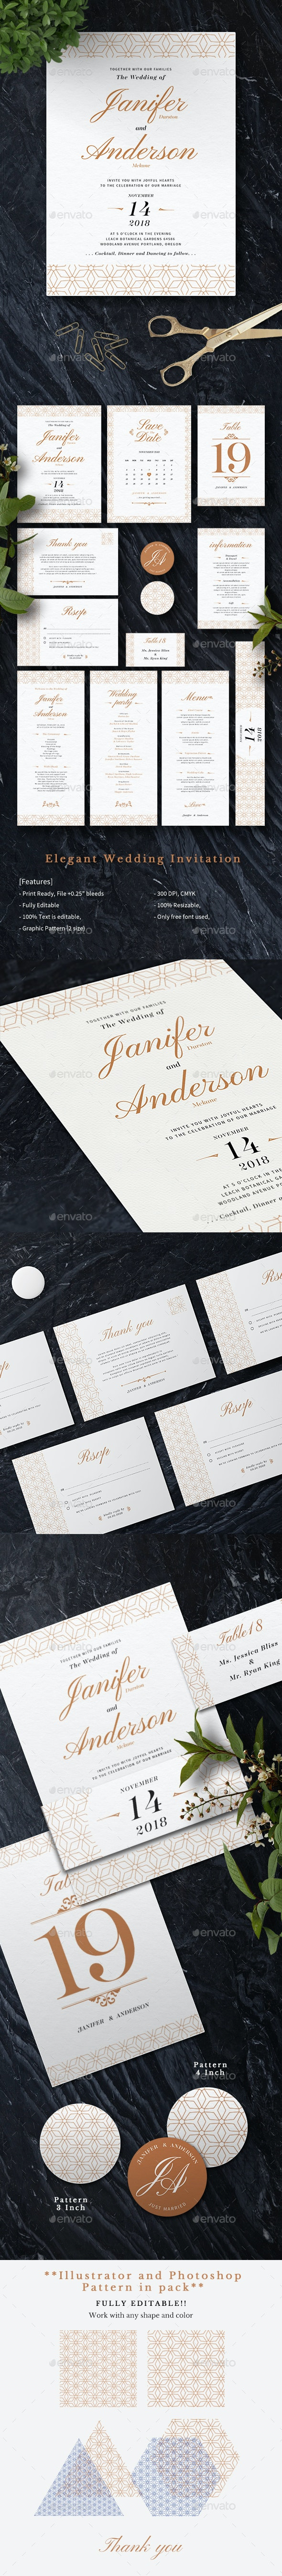 Elegant Wedding Invitations - Weddings Cards & Invites